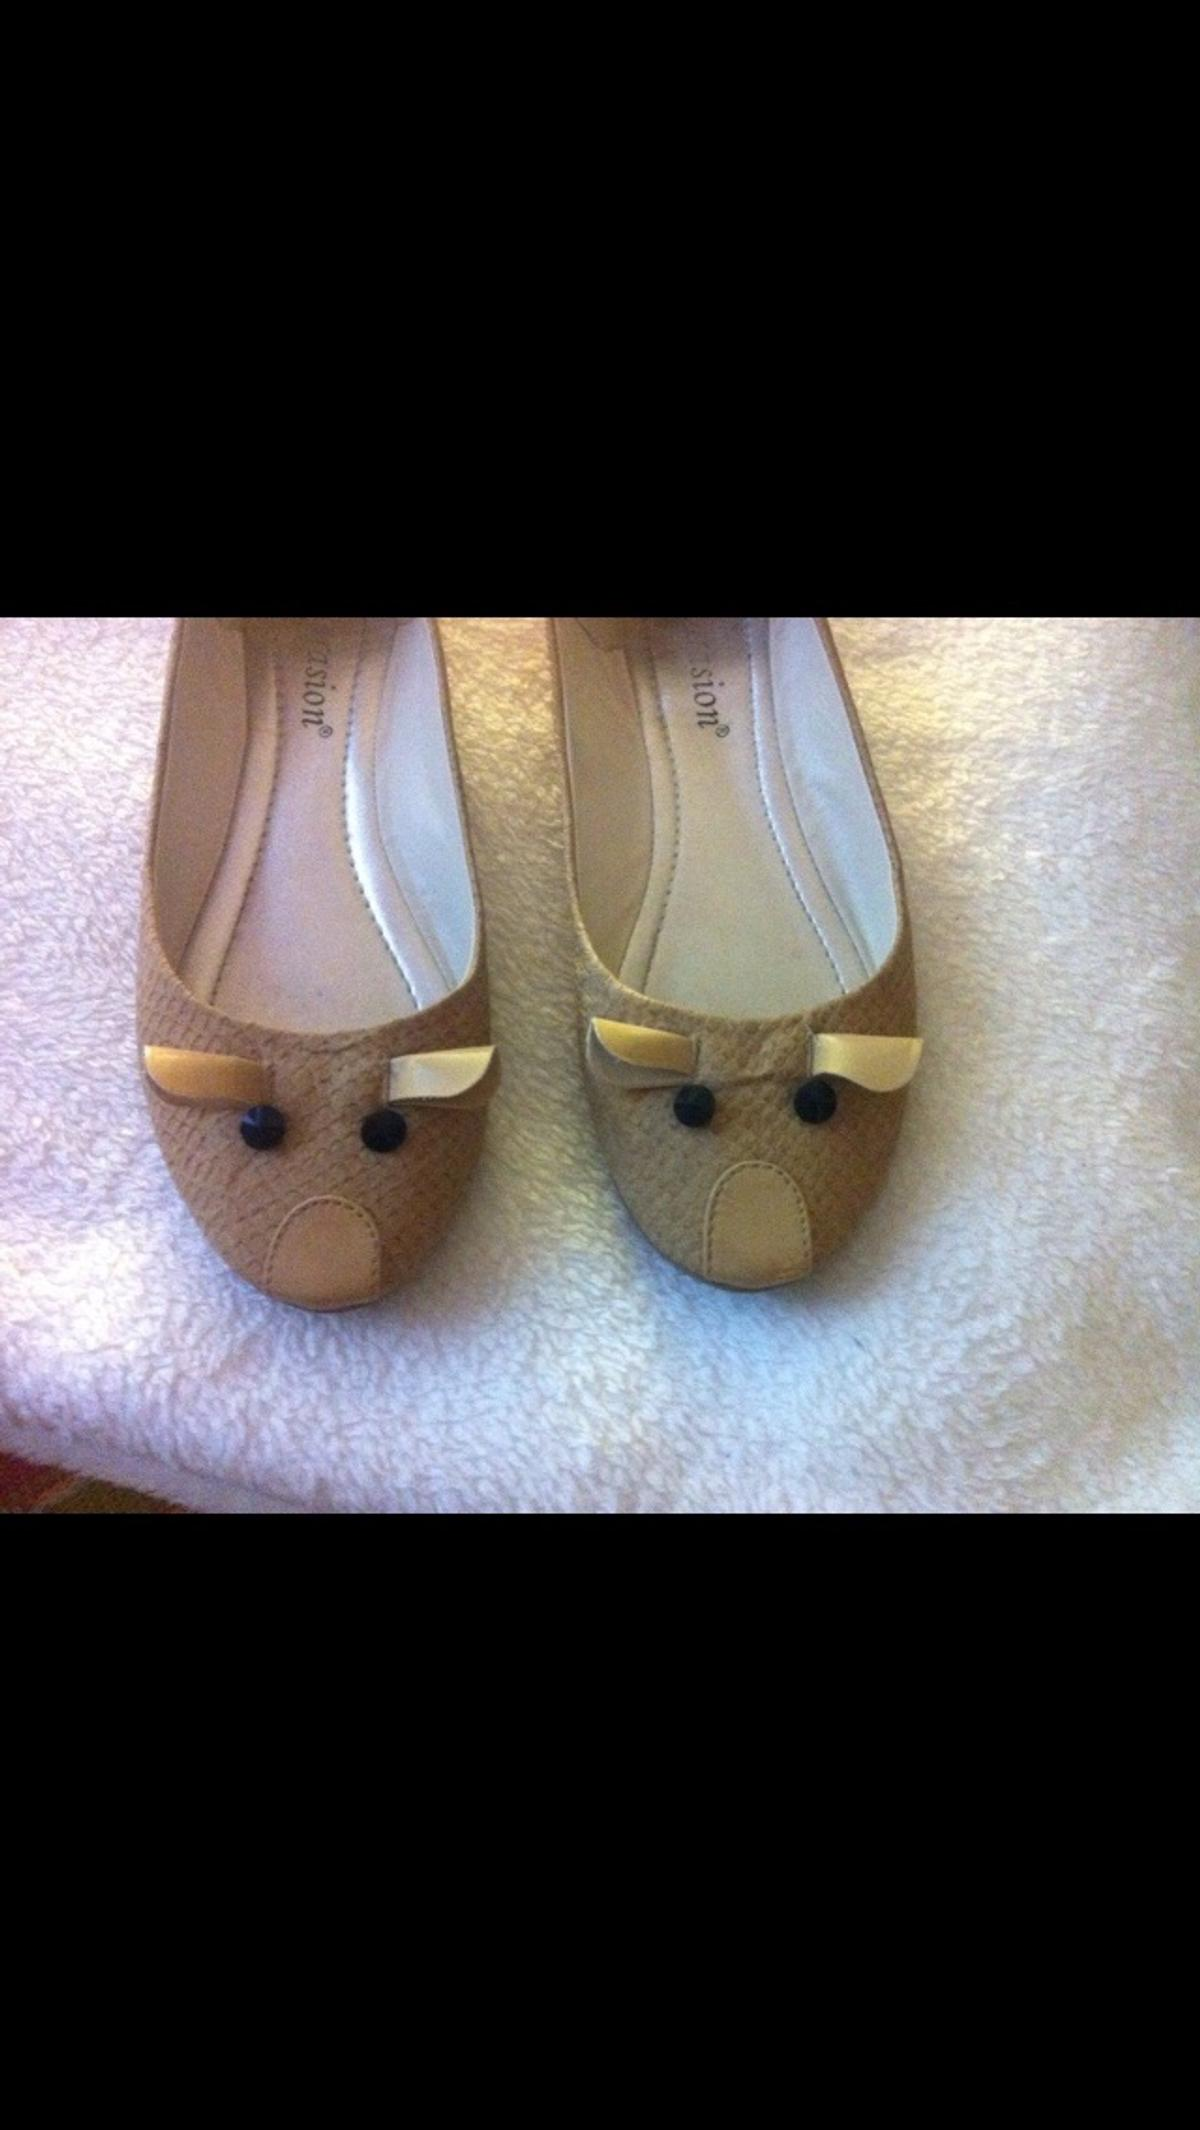 low priced dac69 92a3a Ballerinas Sommer Gr. 38 in 93455 Traitsching for €5.00 for ...